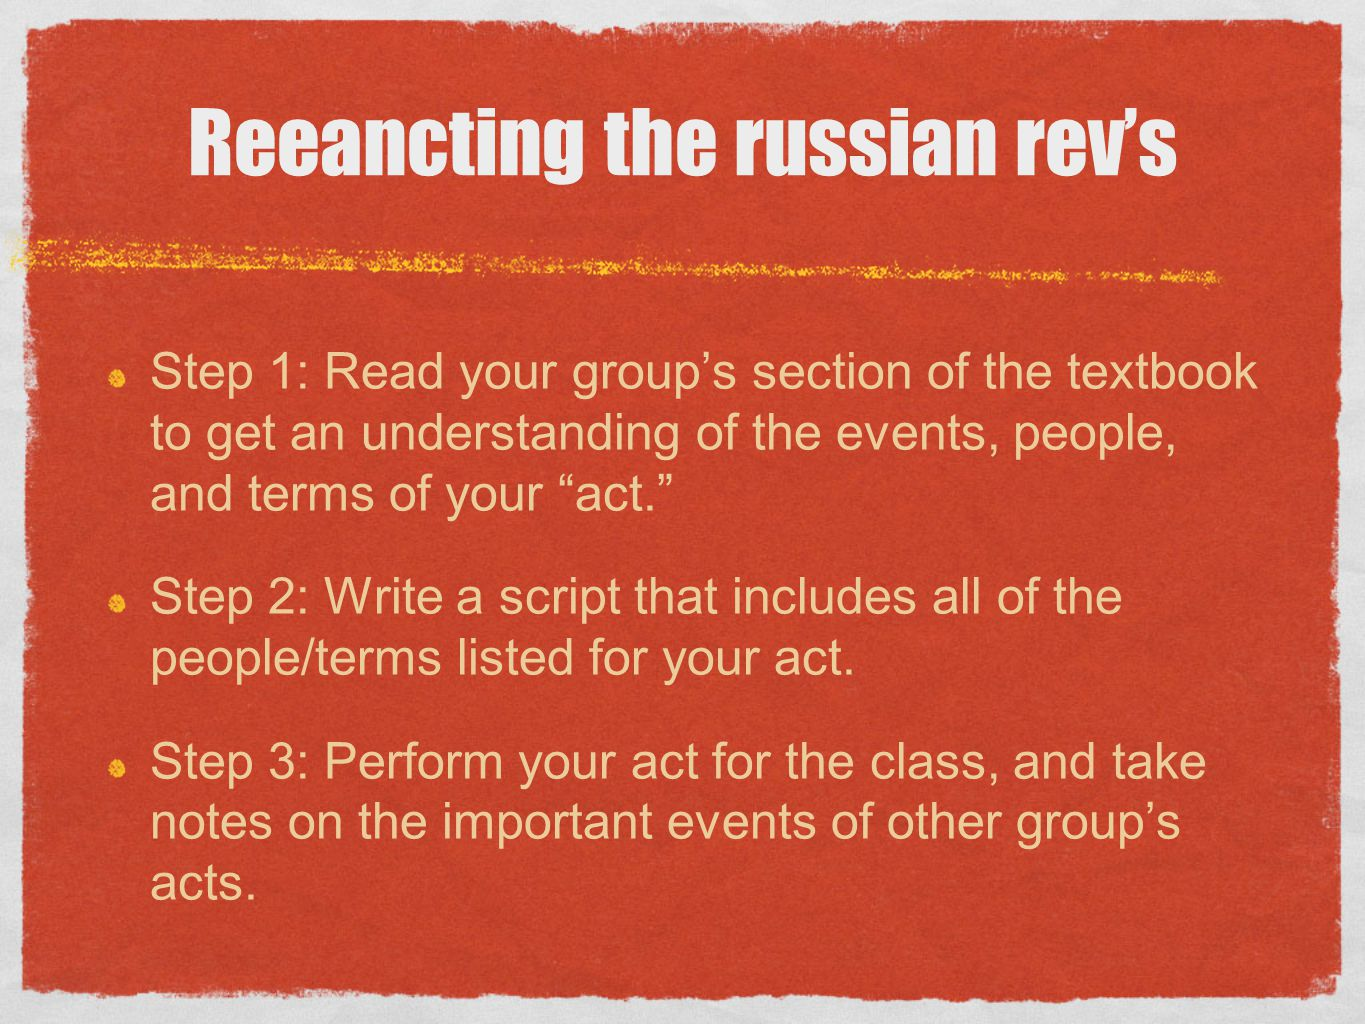 Reeancting the russian rev's